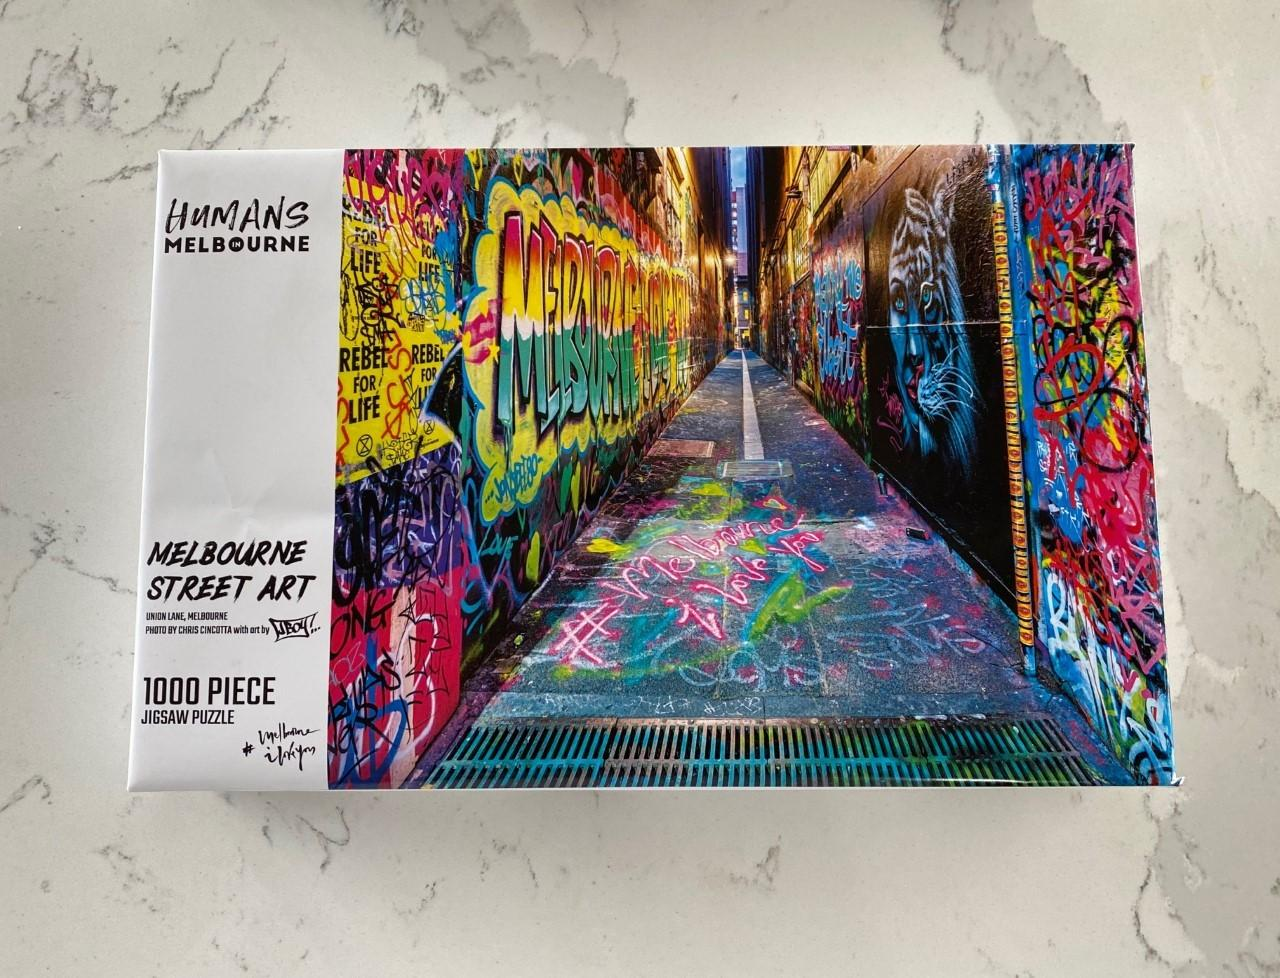 Humans in Melbourne Jigsaw Puzzle: Melbourne Street Art (1000 pieces)